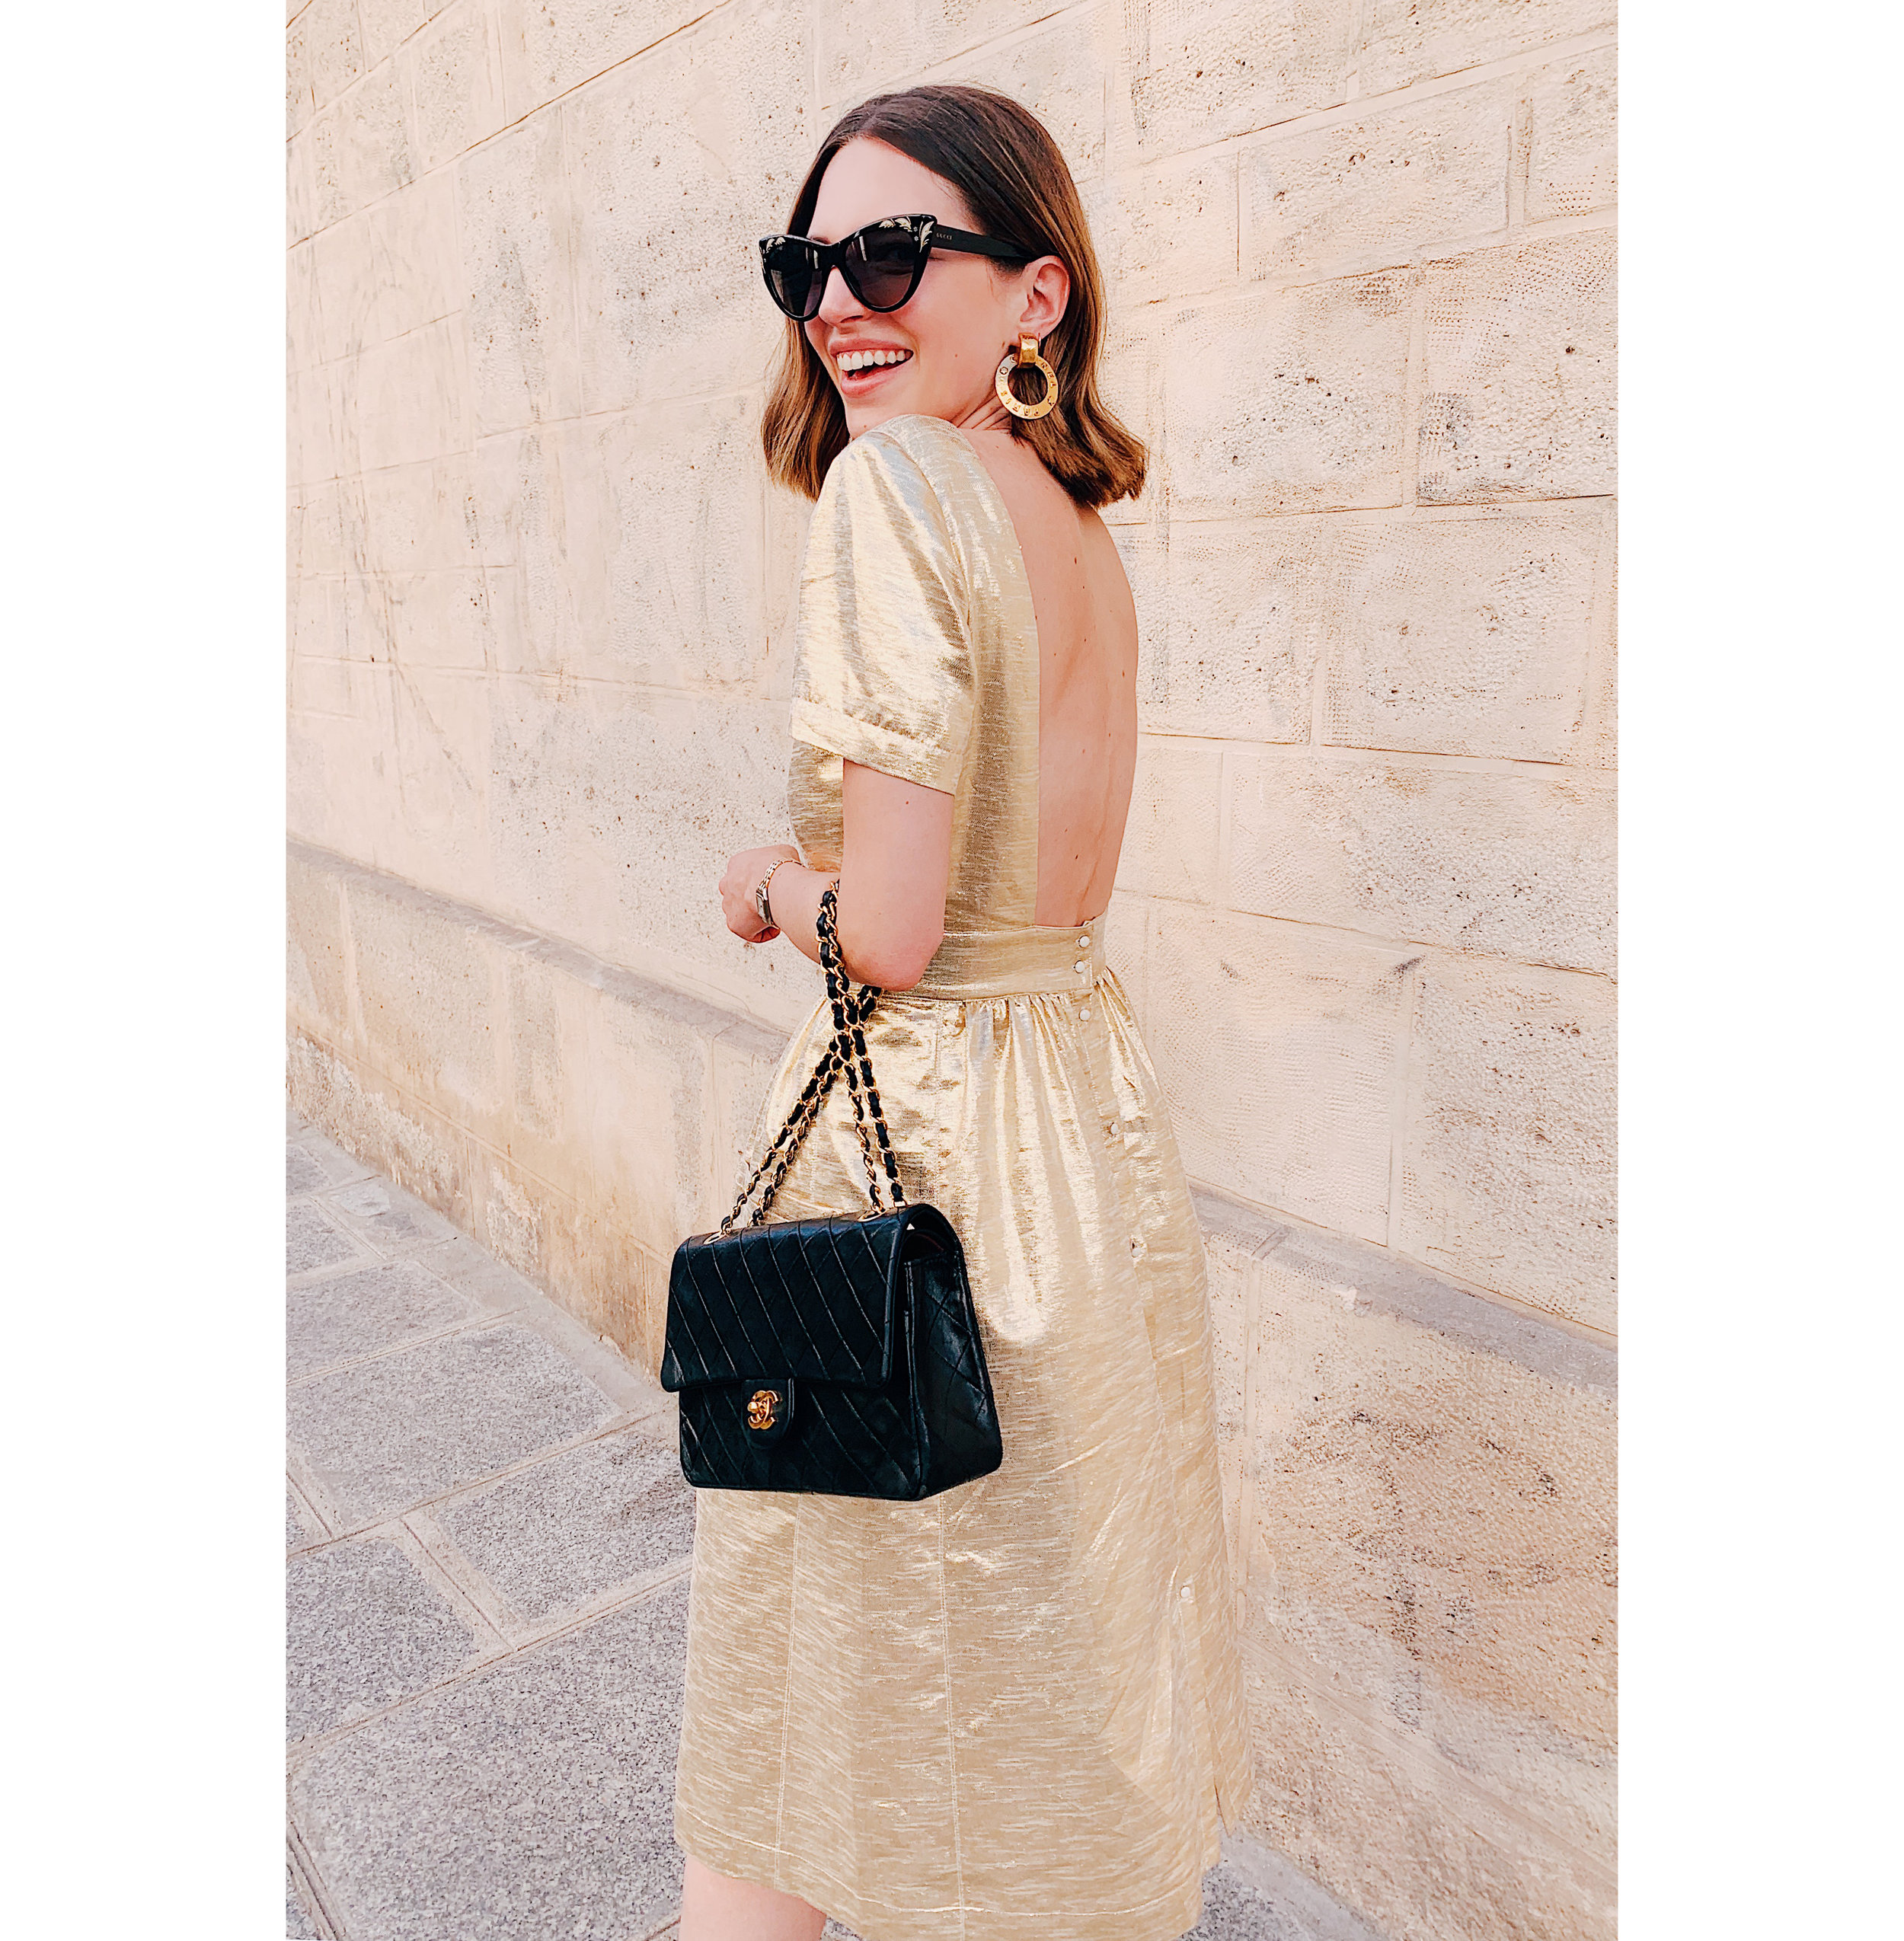 Paris 1 Gold Sezane Dress.jpg